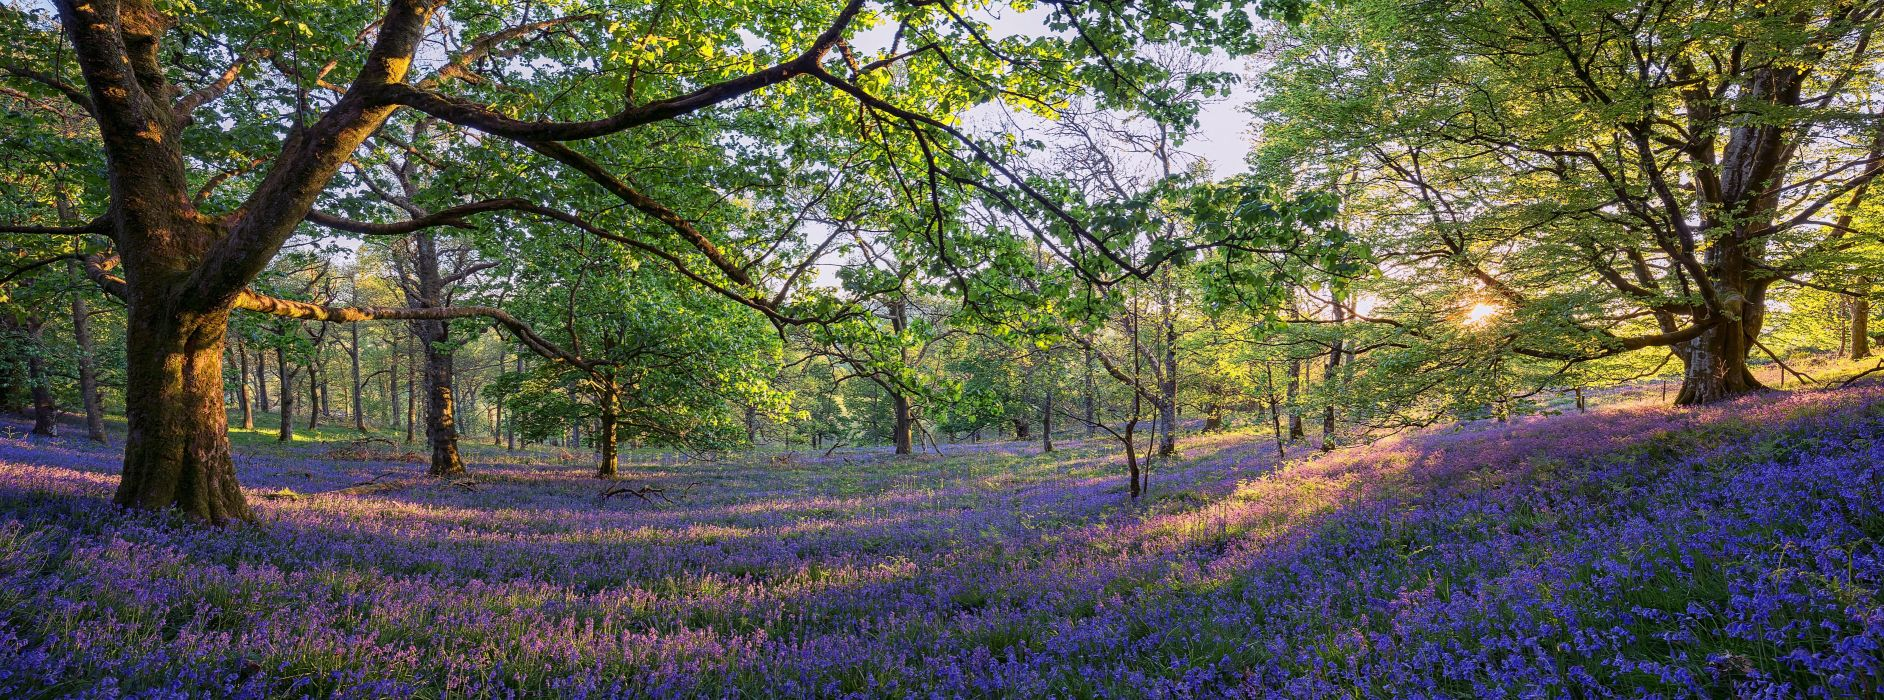 Trossachs Scotland forest trees meadow flowers panorama wallpaper